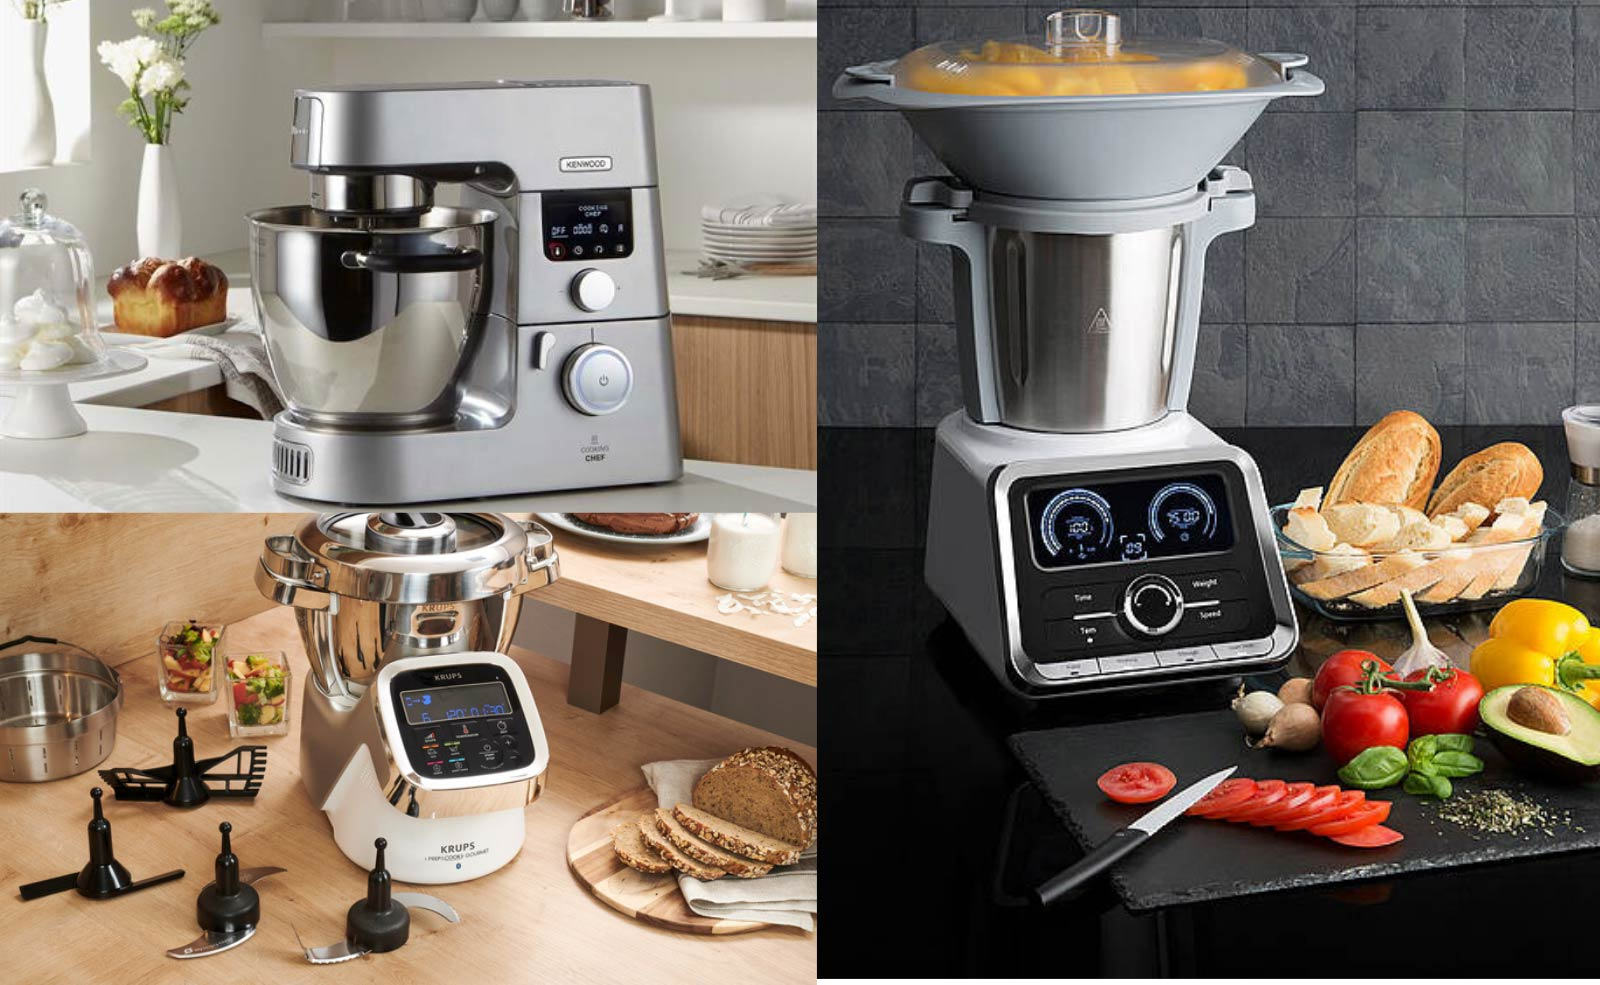 Thermomix Alternativen von Bosch, Kenwood, Krups und Co im Verlgeich 2020